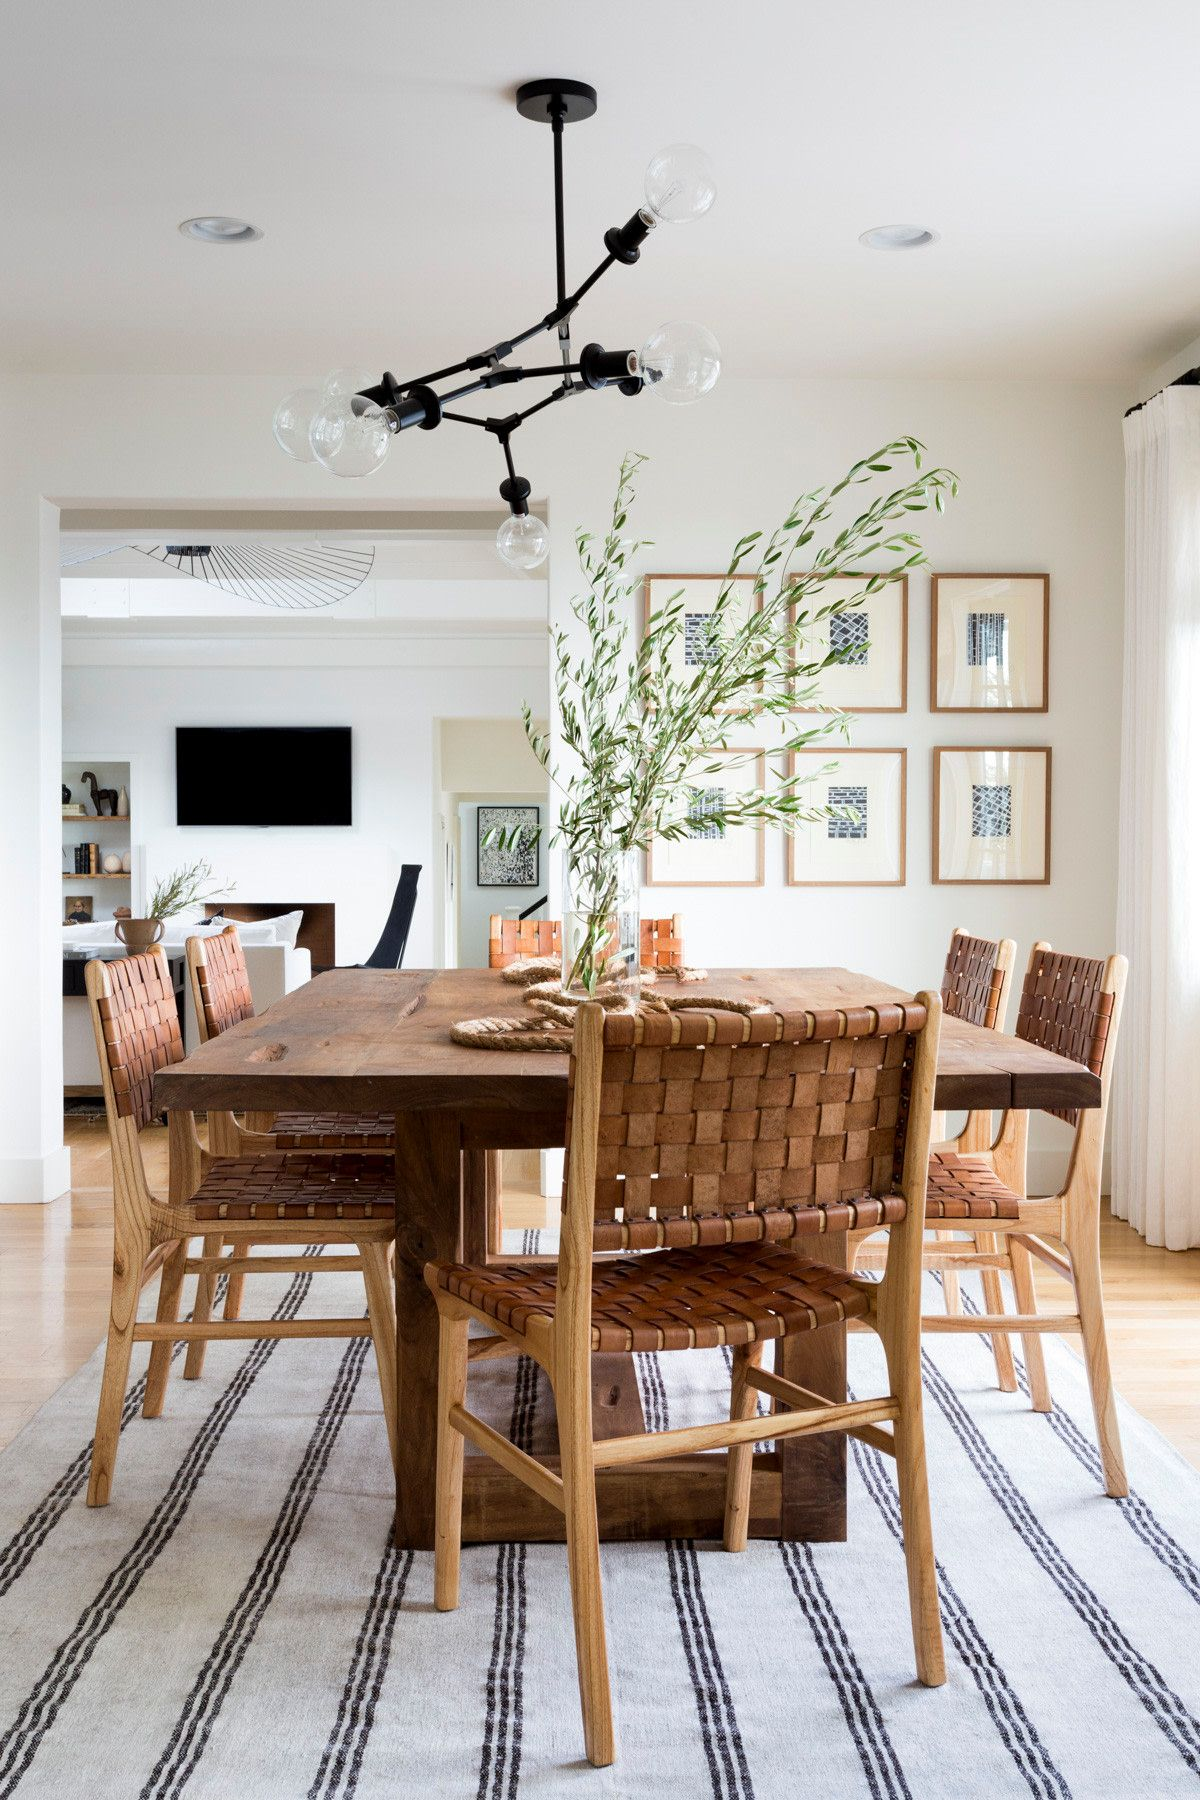 How A Young Couple Infused Their Colorful Personalities Into A Neutral La Home Modern Dining Room Dining Room Design Dining Room Inspiration